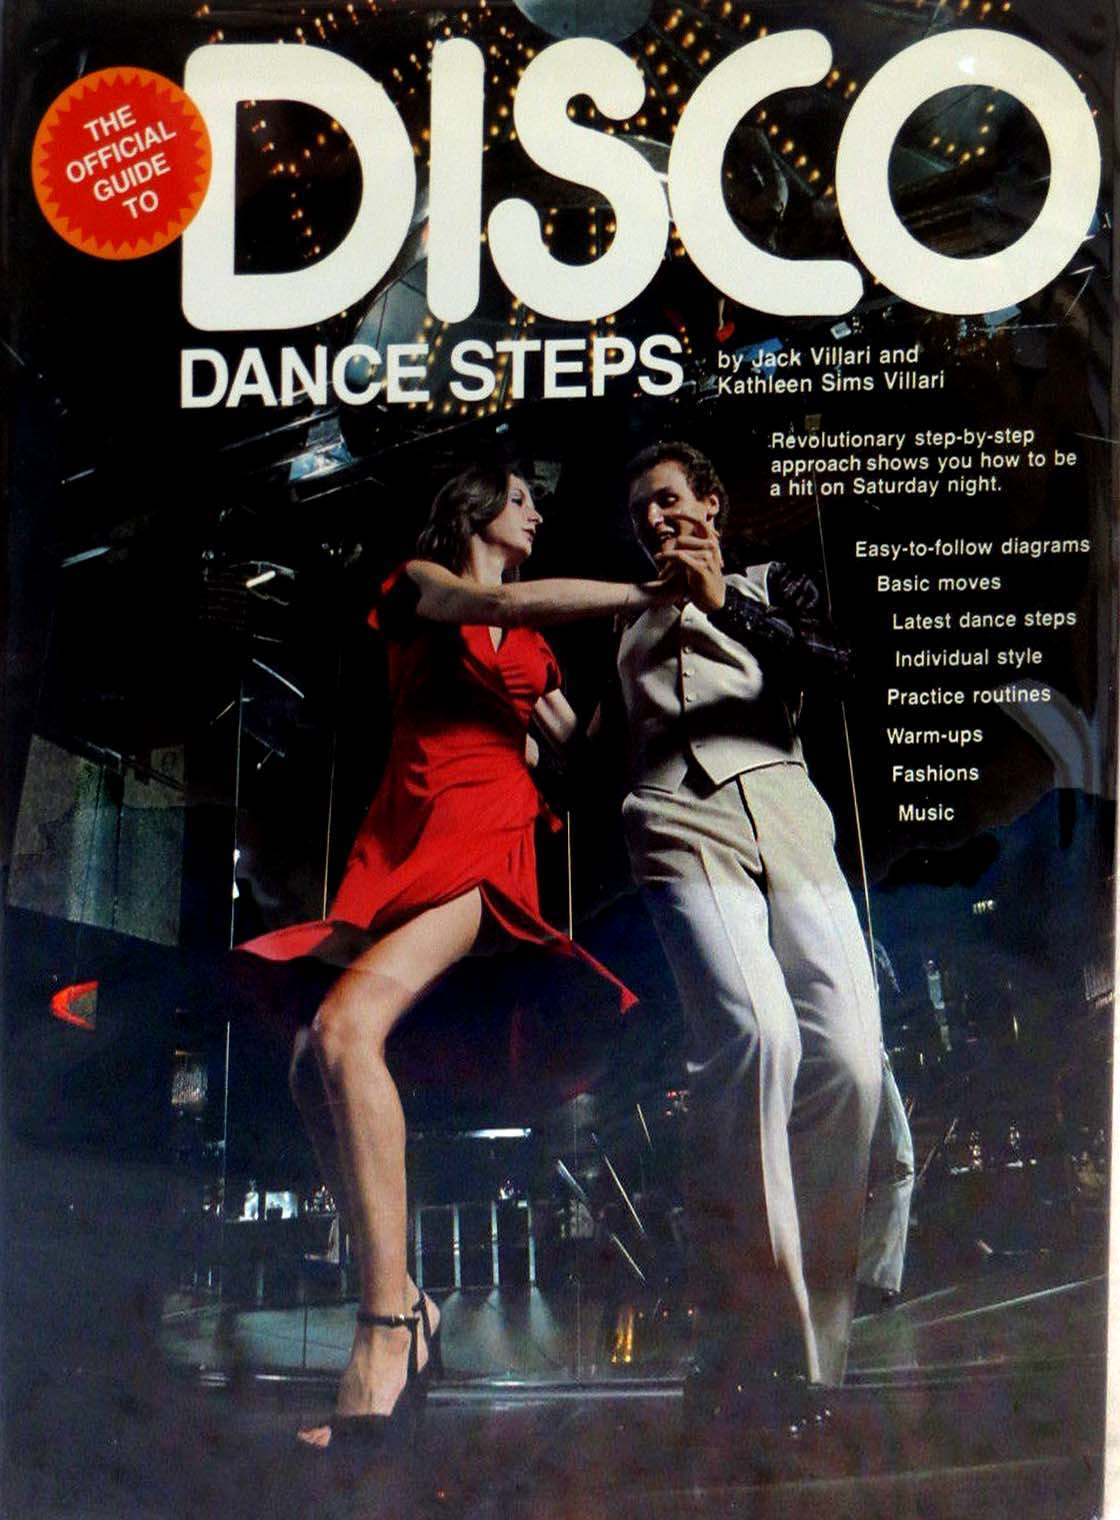 Kathleen and Jack Villari THE OFFICIAL GUIDE TO DISCO DANCE STEPS Domus c. 1978